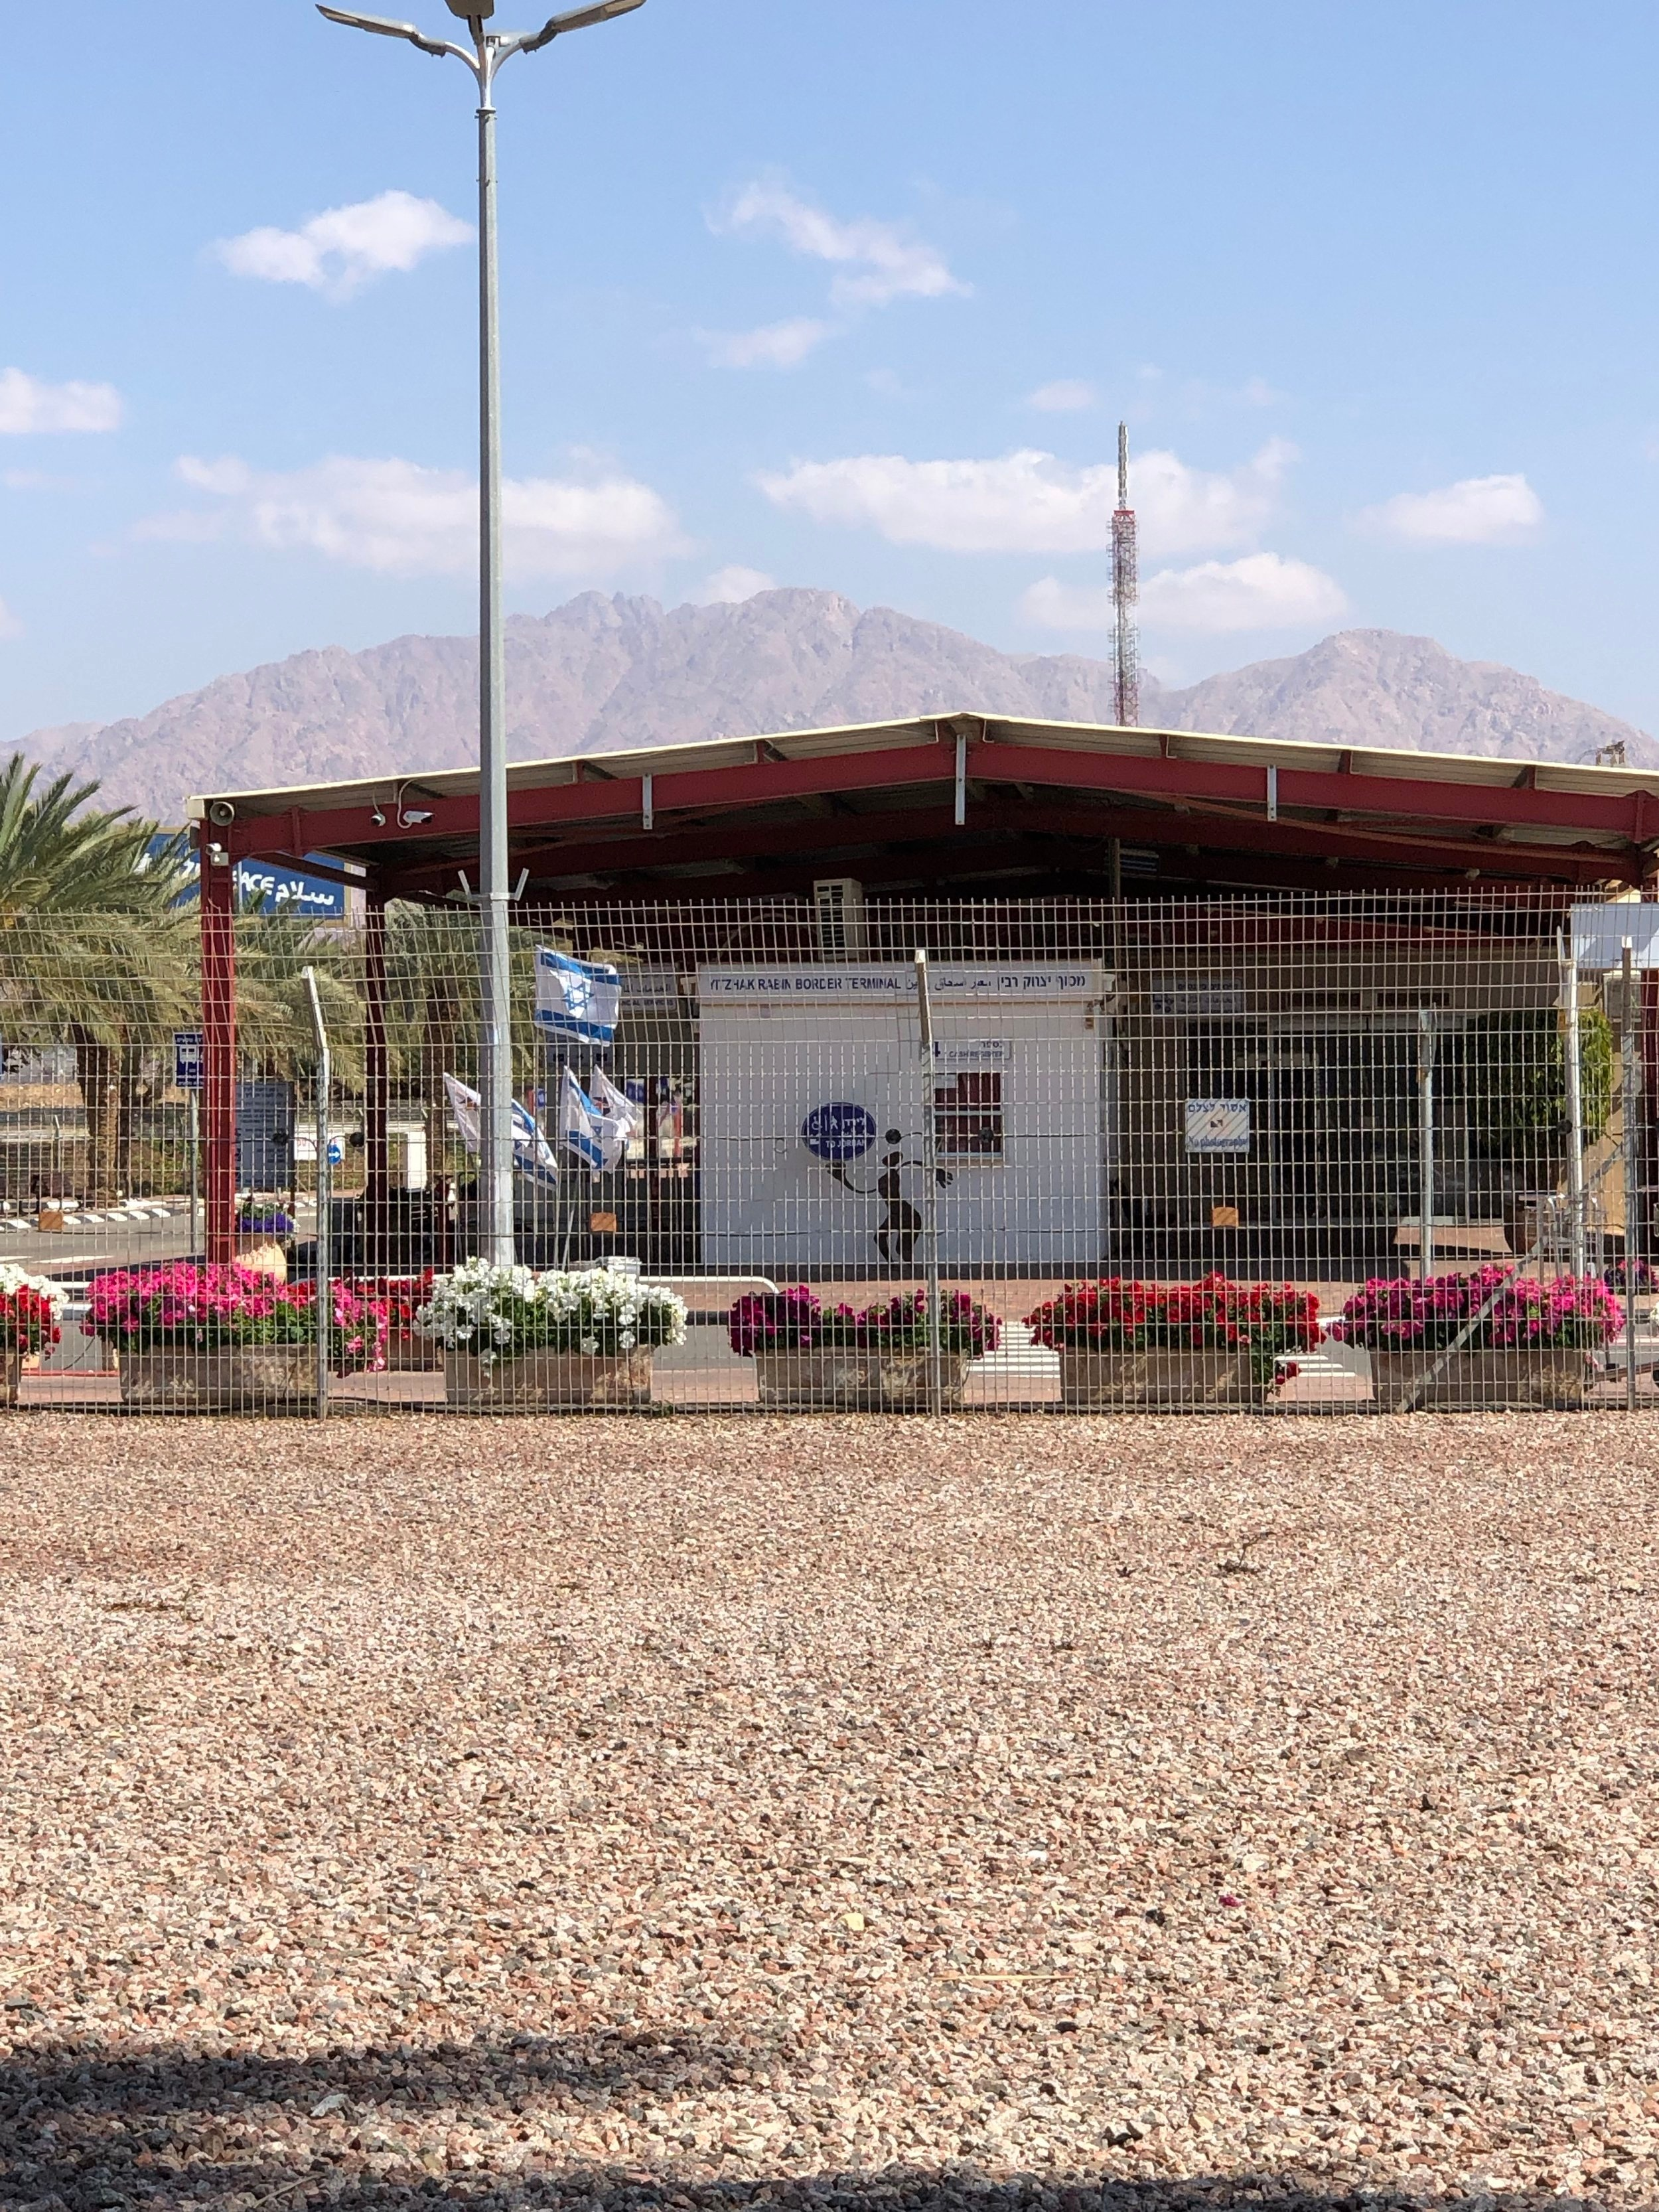 On the Israeli side of the border at Eilat